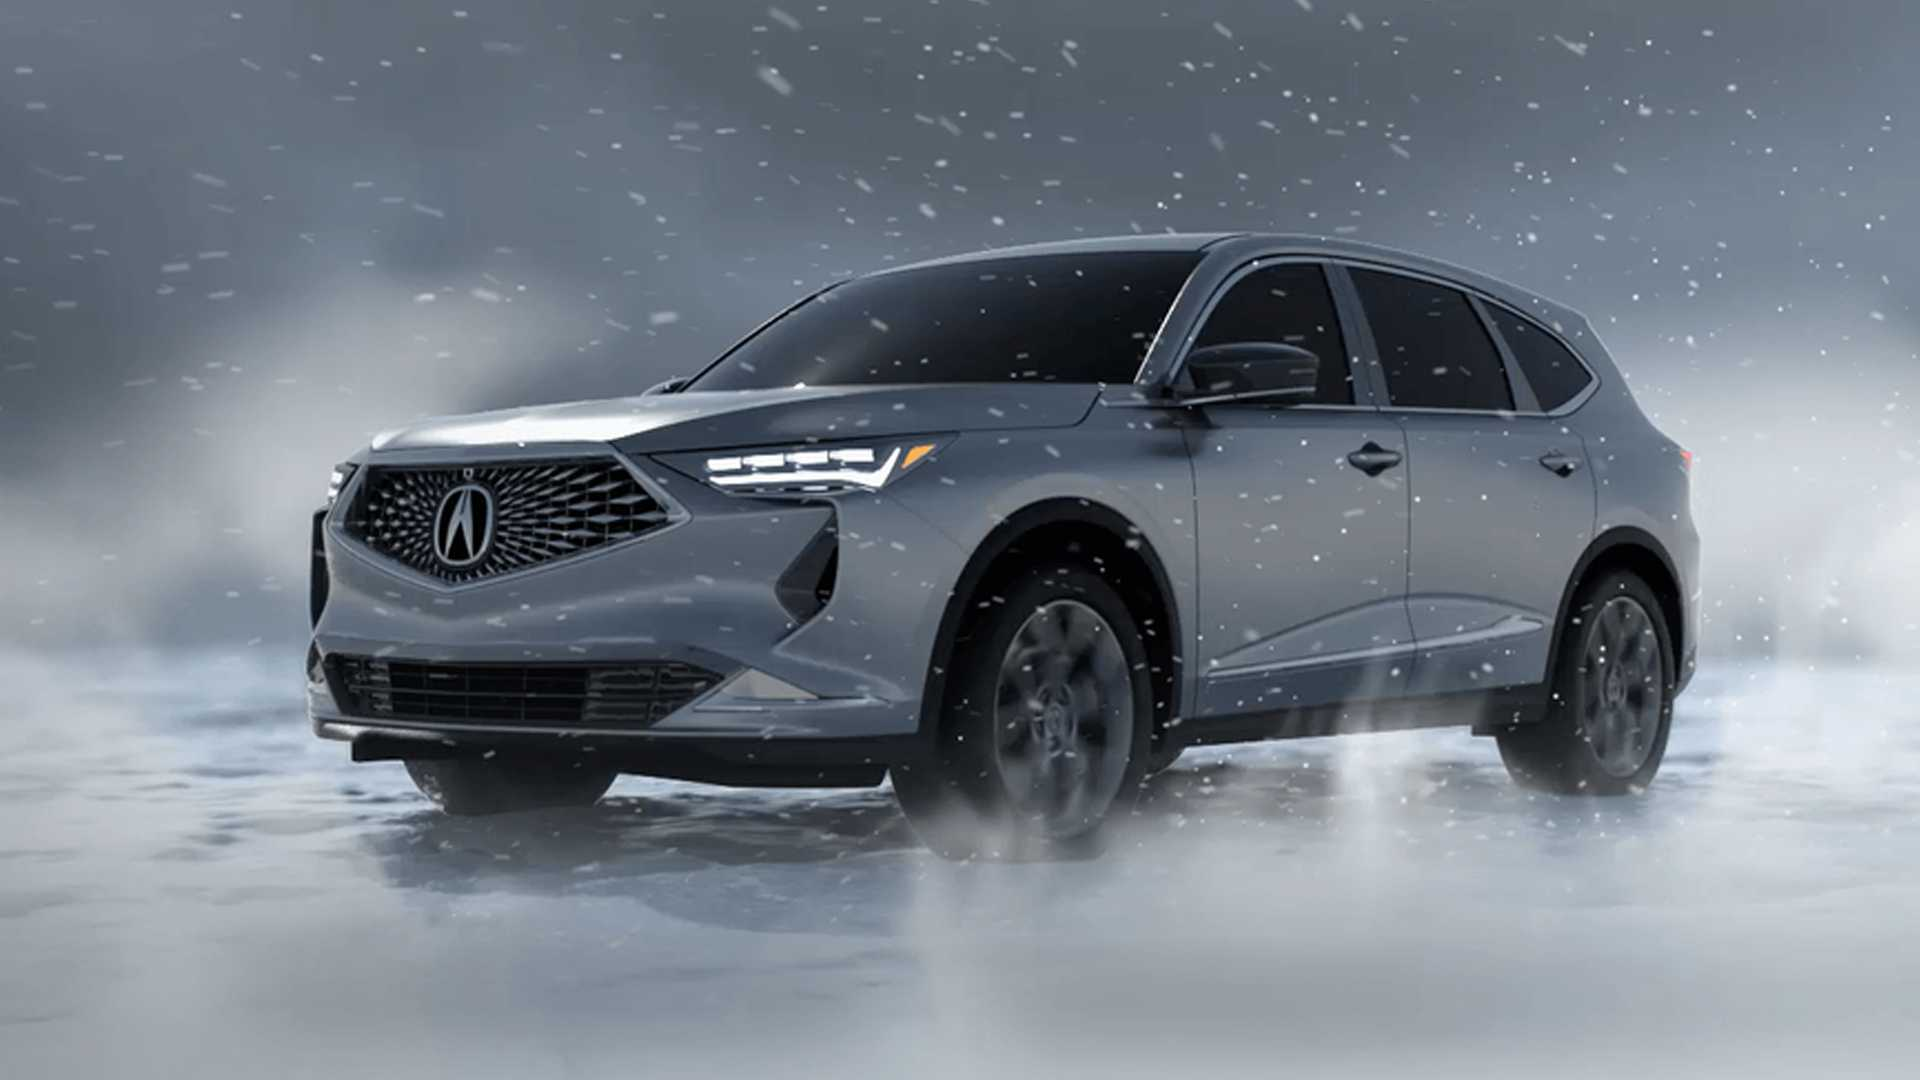 New Acura Mdx Tlx Allegedly Leaked Through Rdx Software Suite